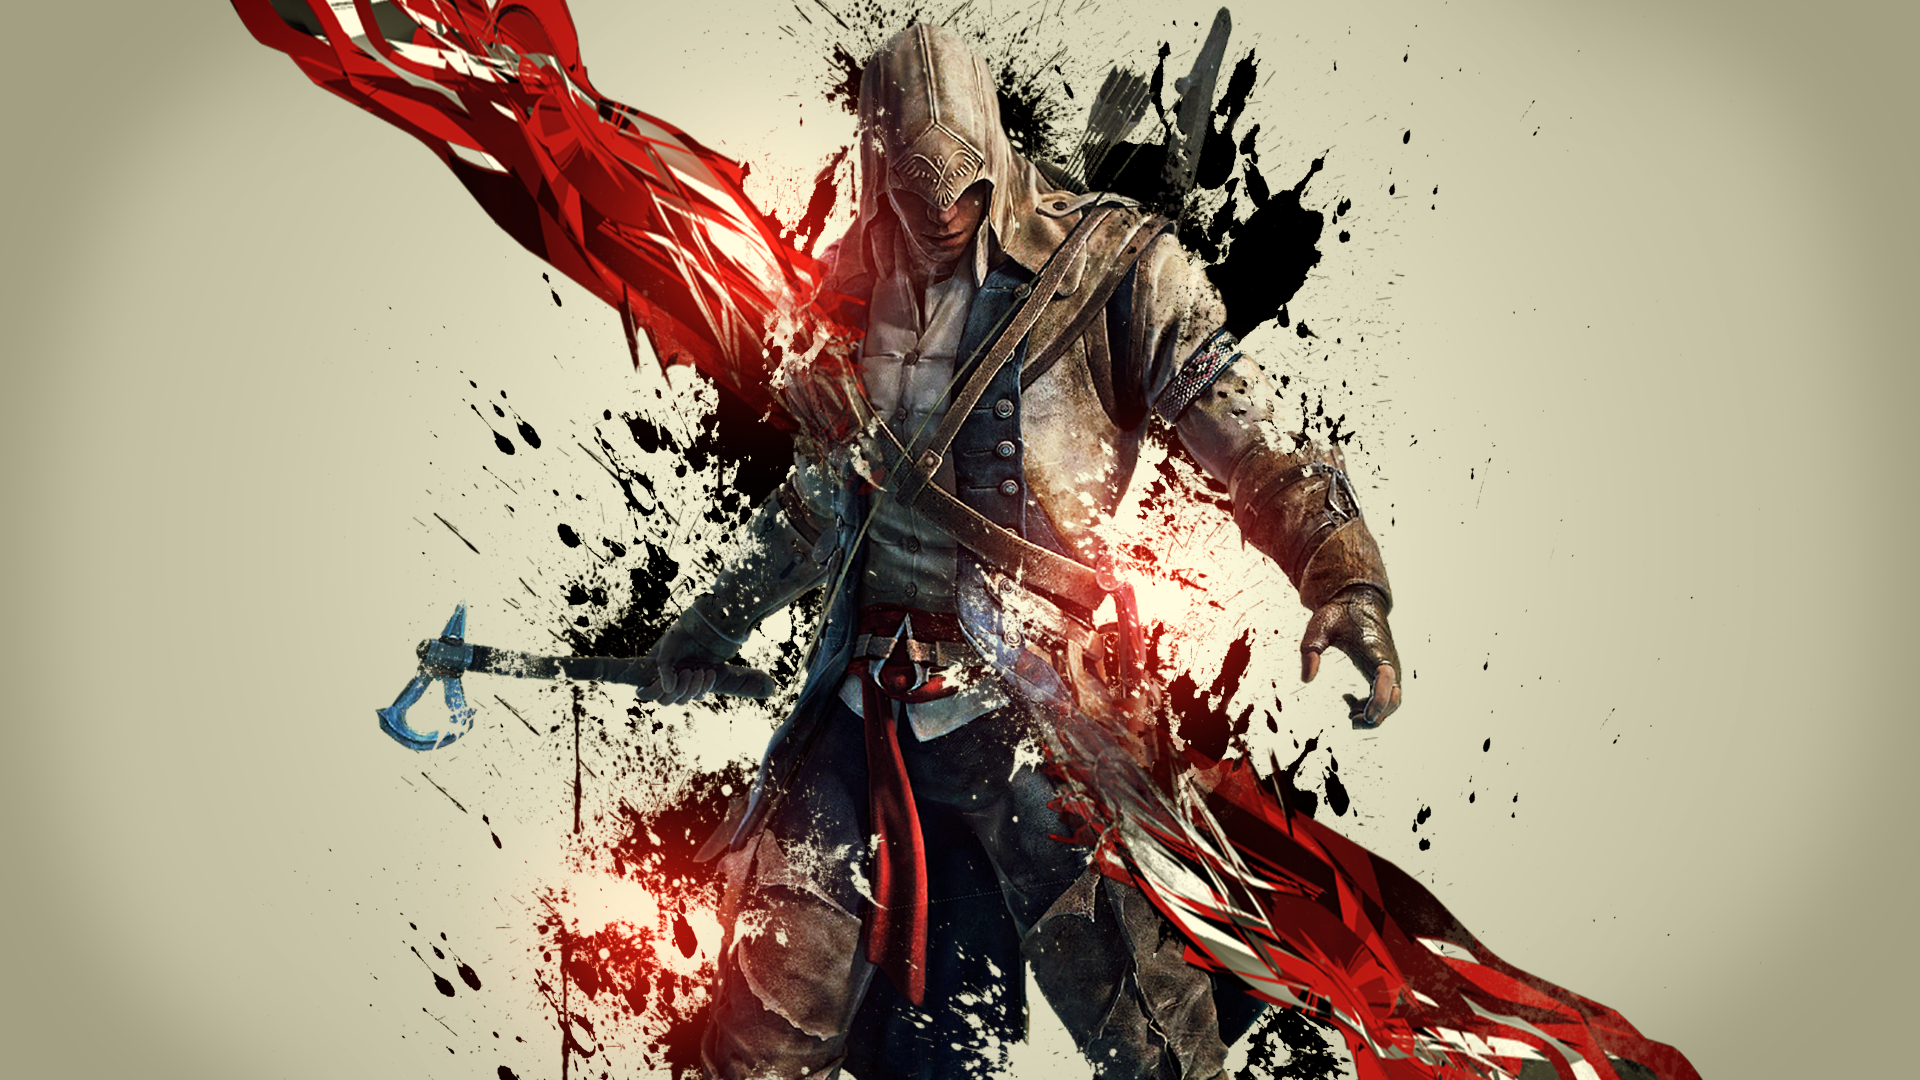 assassin s creed ii assassin s creed a brief history creed assassin 1920x1080